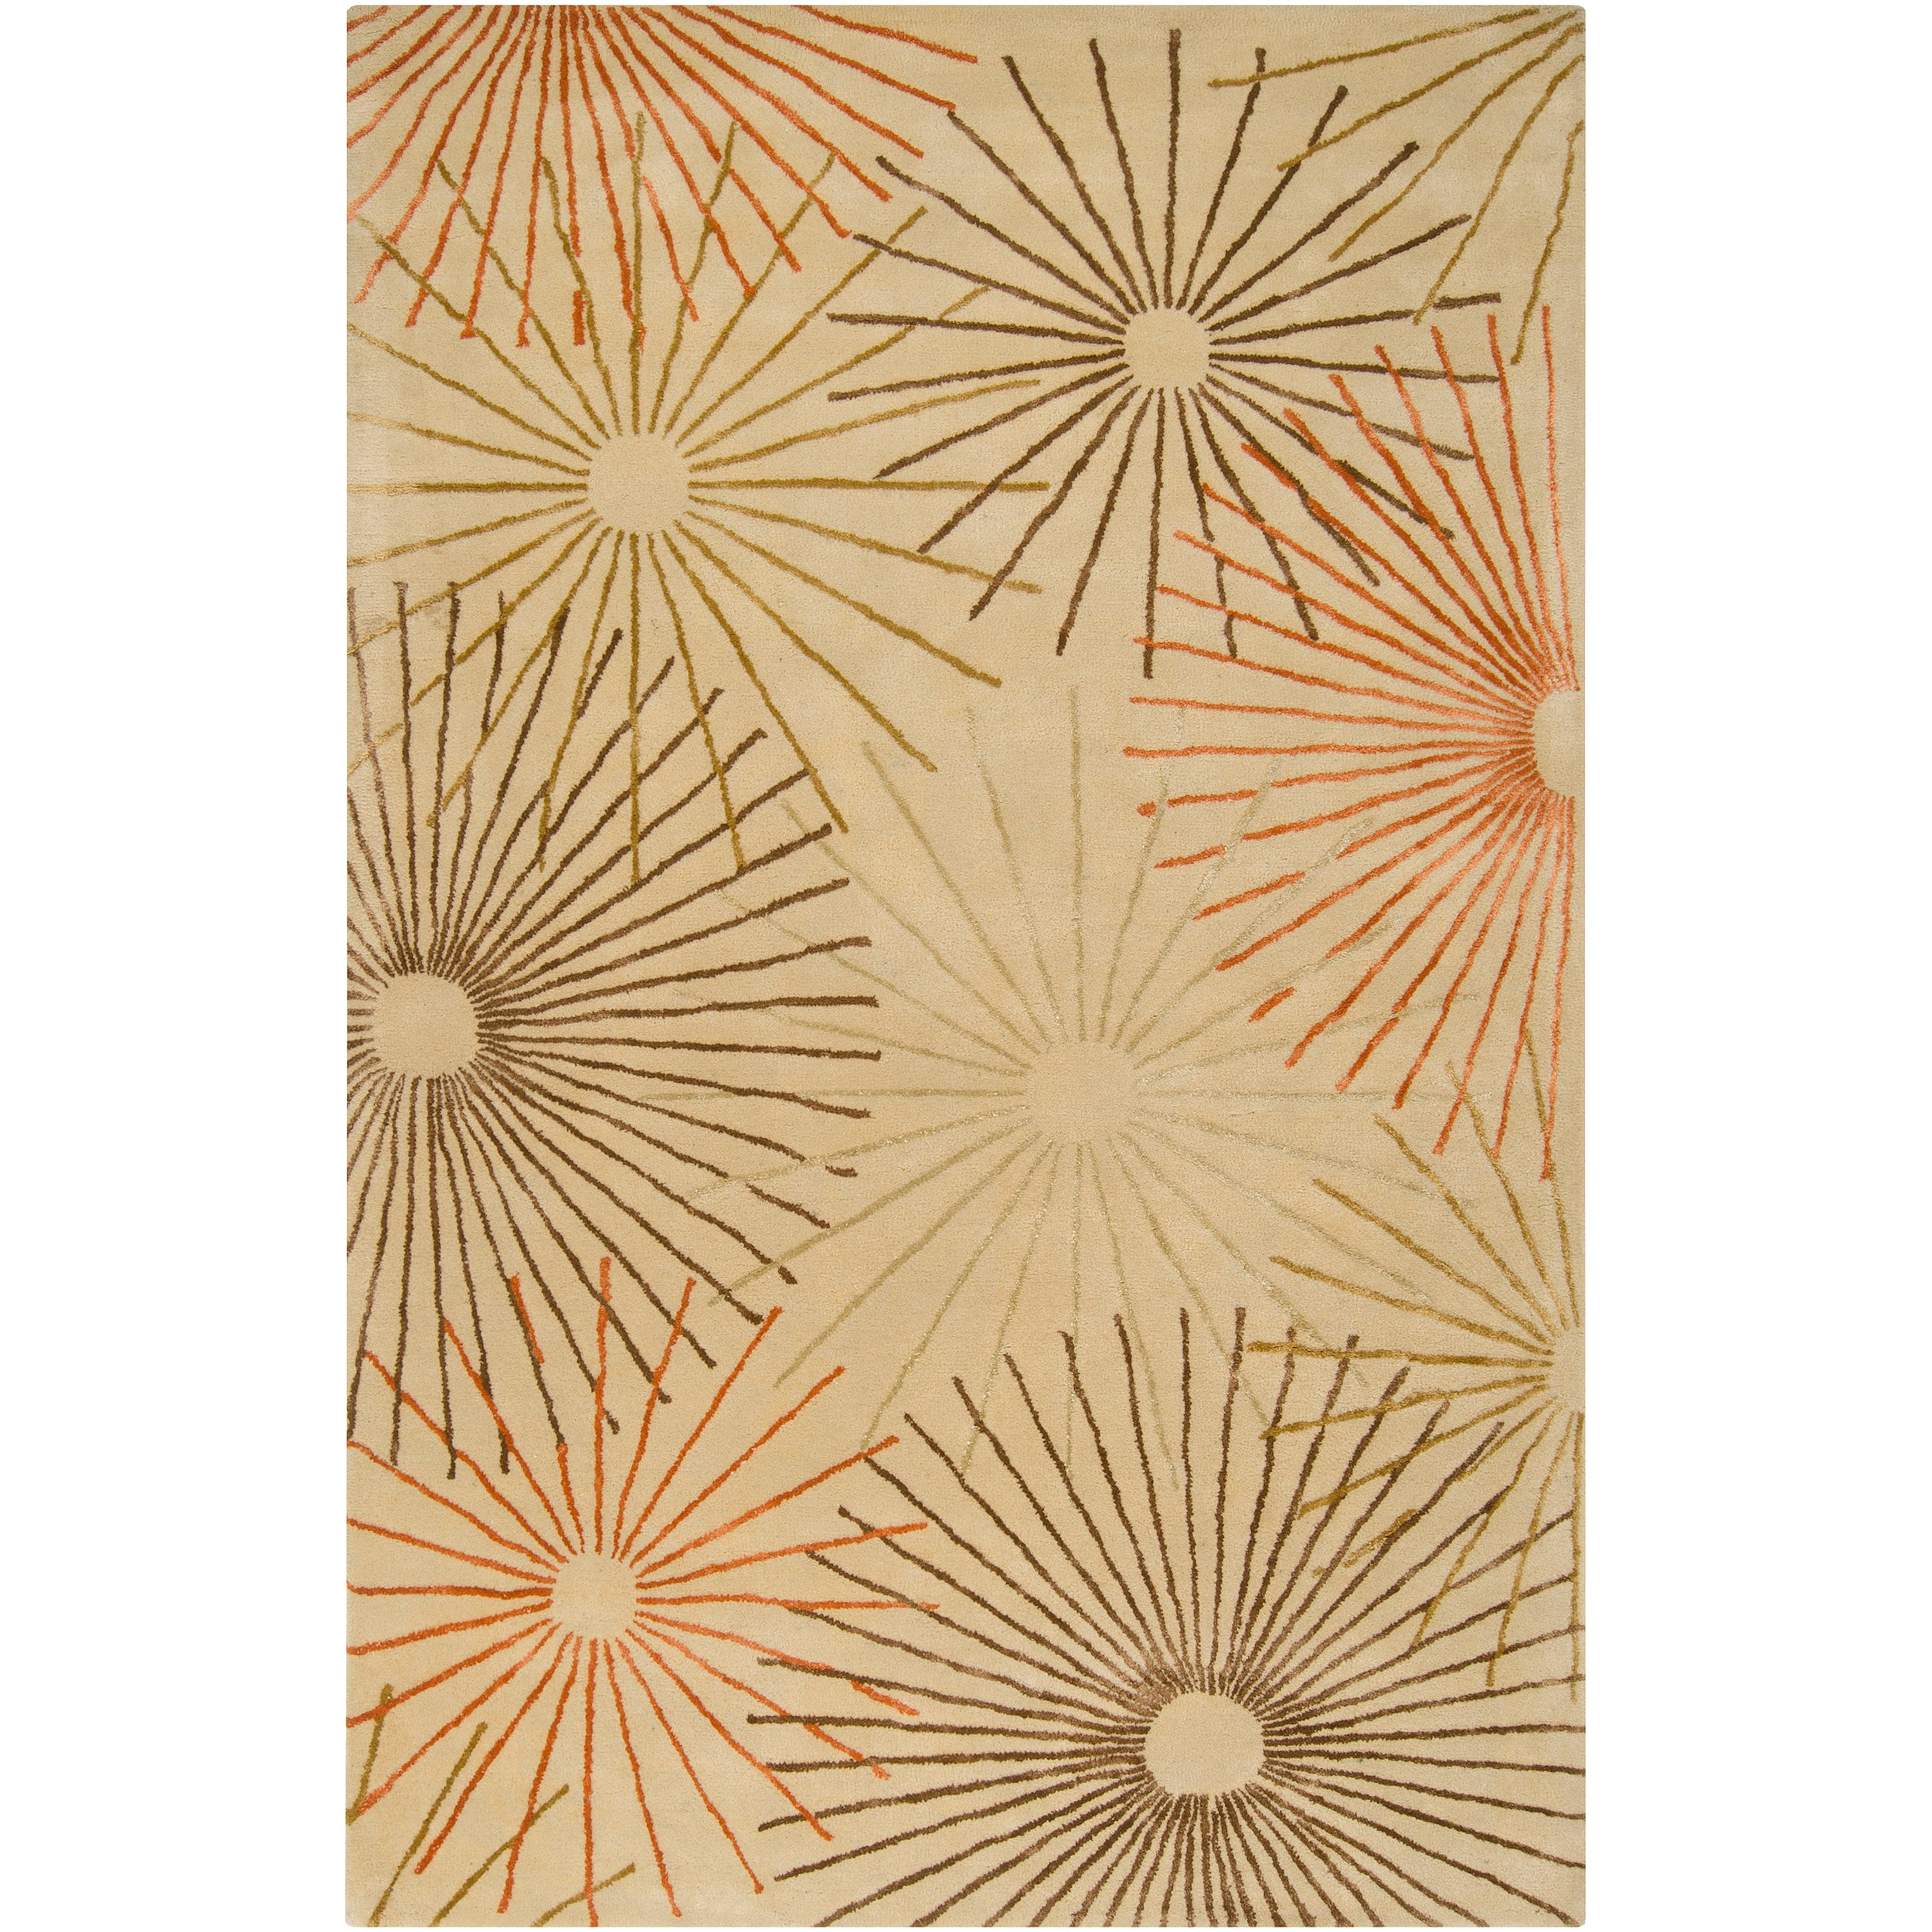 Hand-tufted Black Essence New Zealand Wool and Viscose Rug (5'x 8')